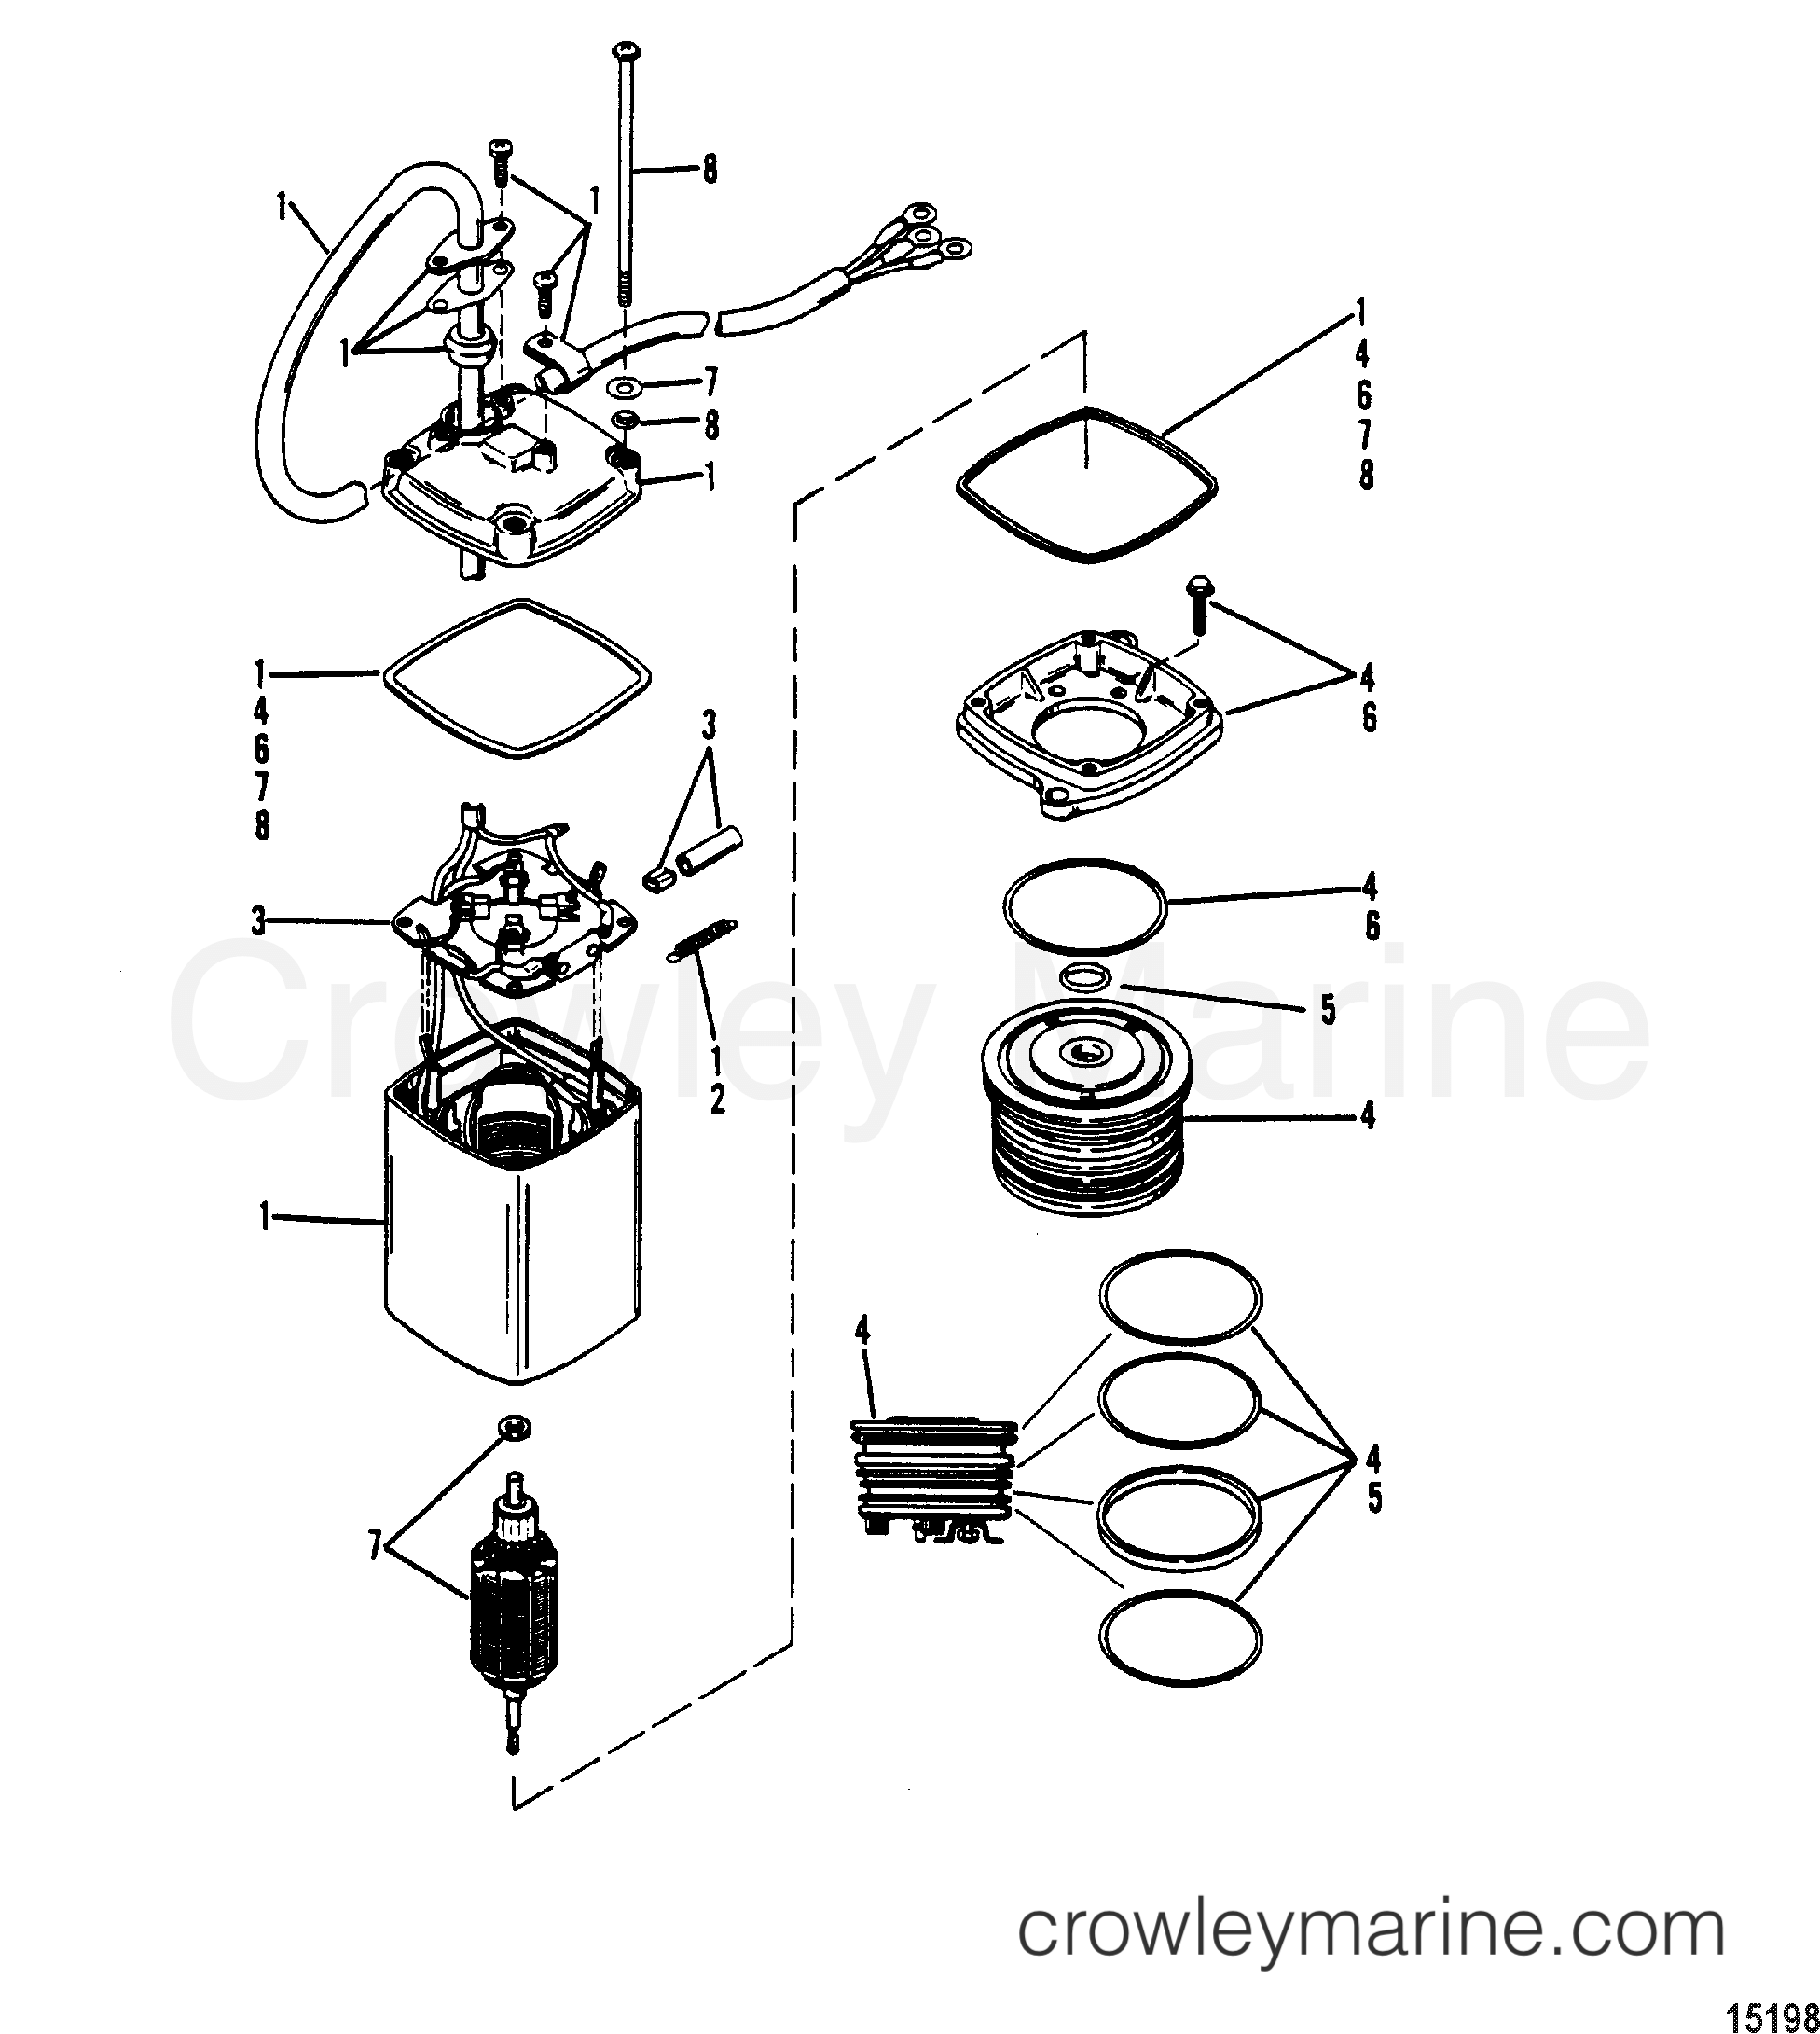 150 Mercury Outboard Parts Diagram Trim. Mercury. Auto